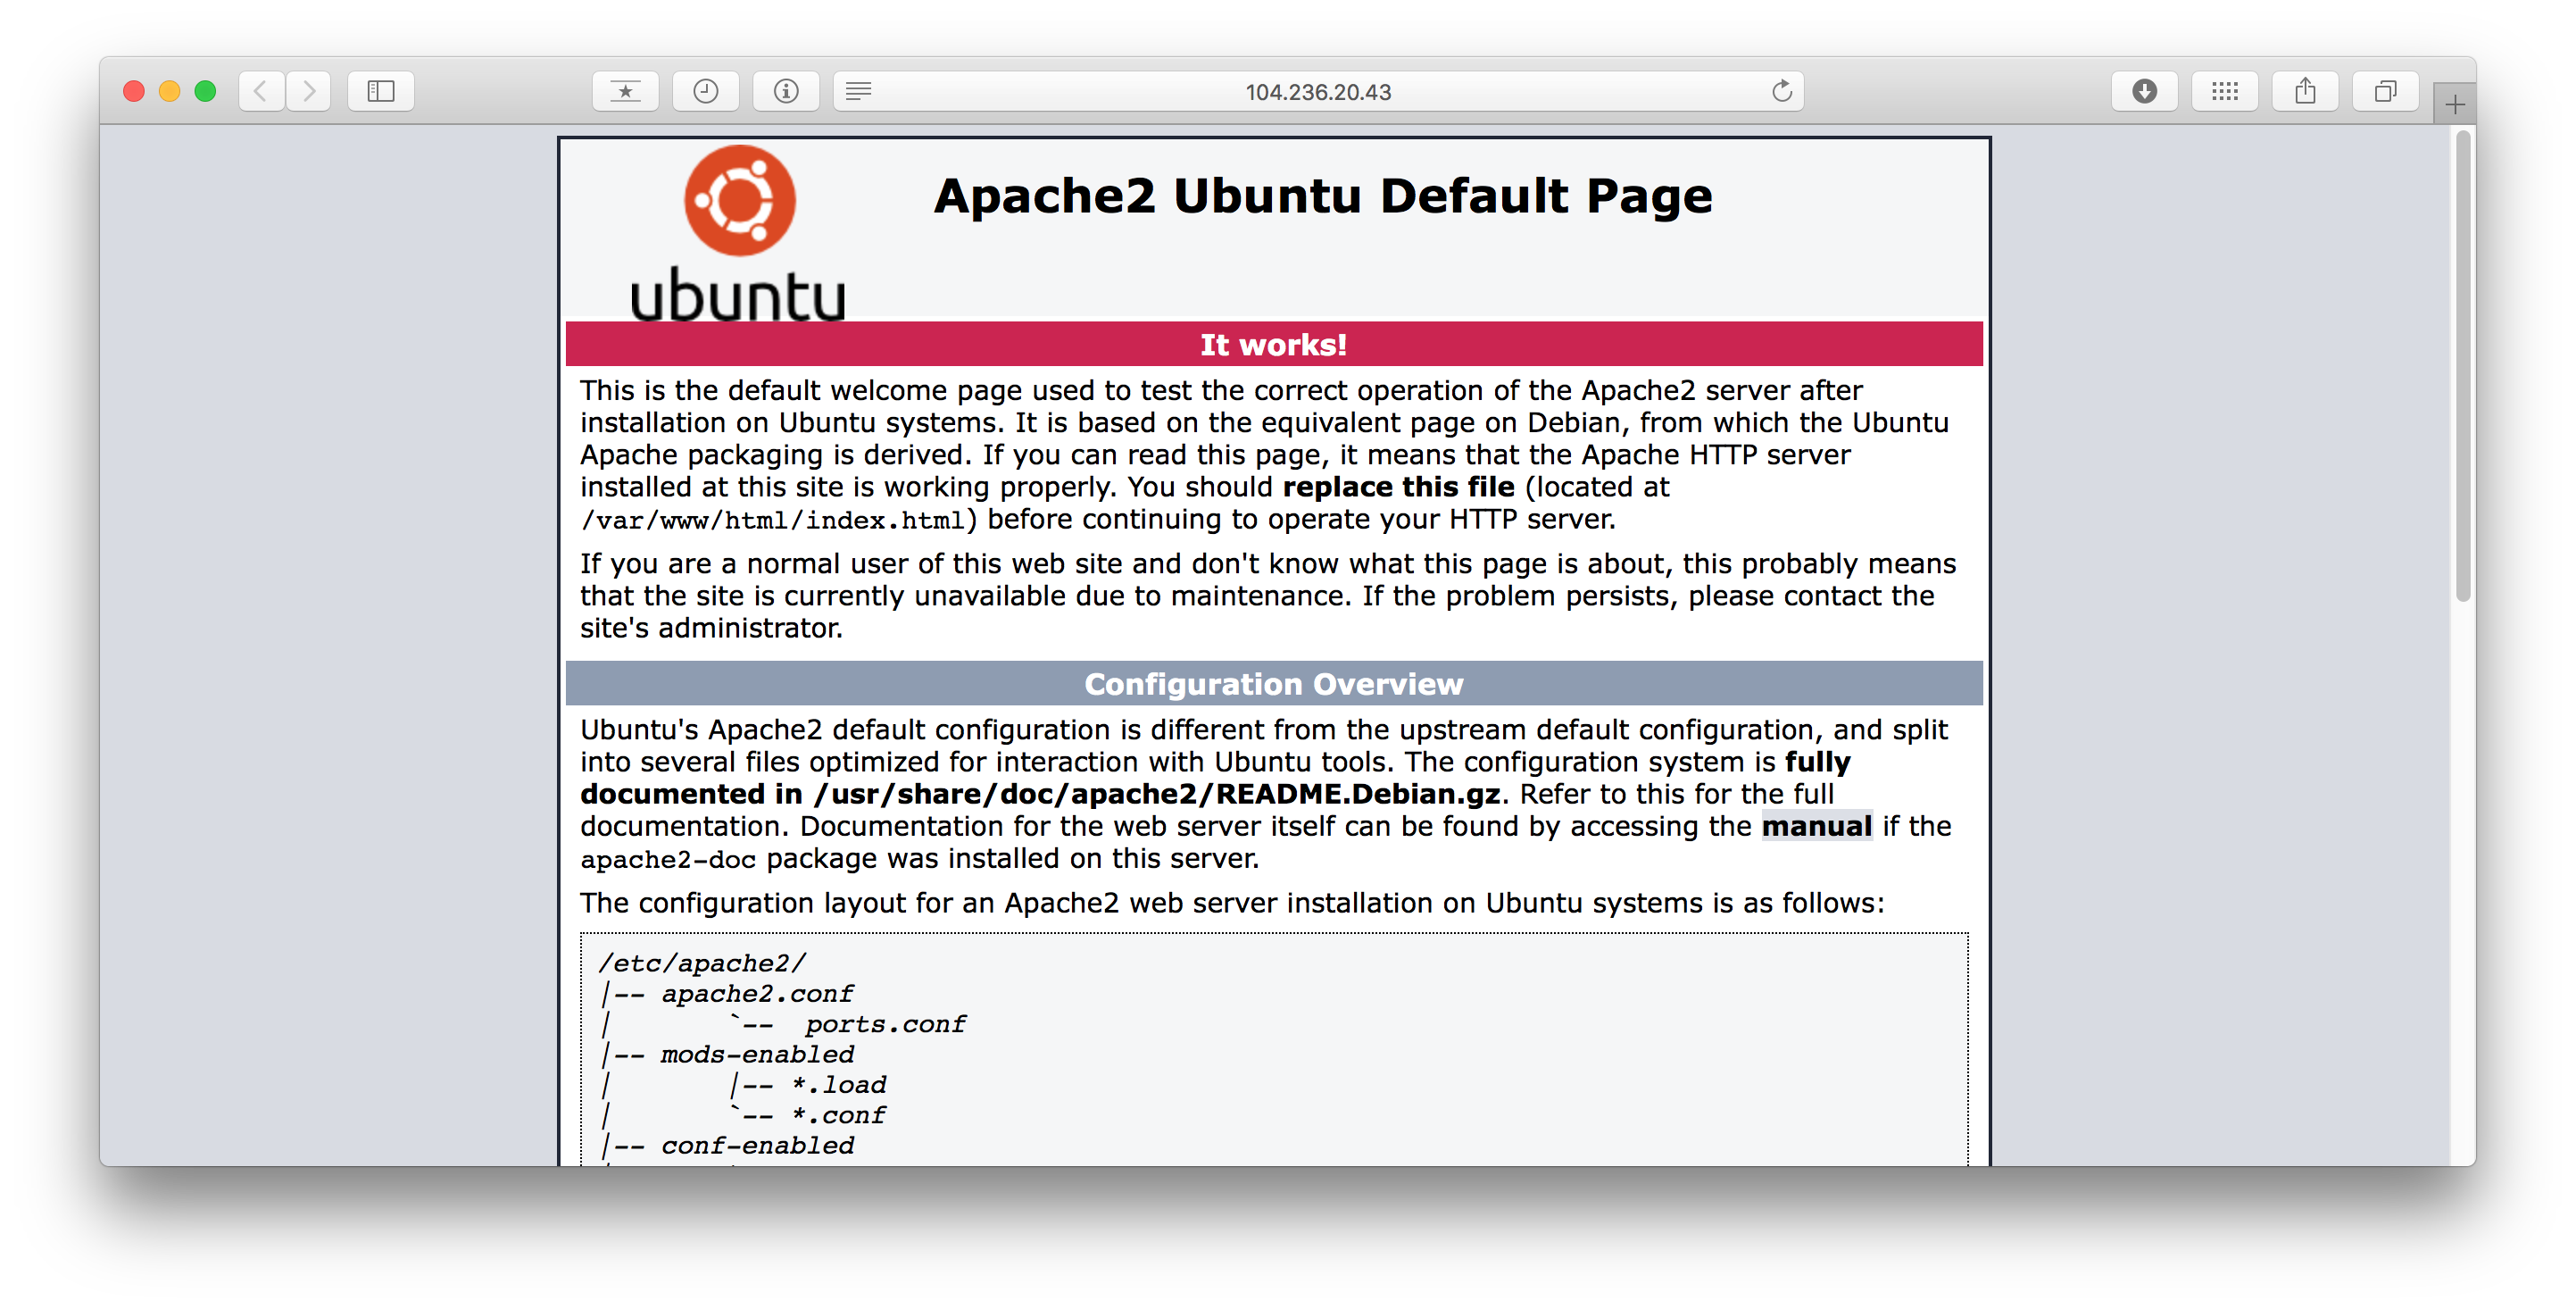 The Apache default page